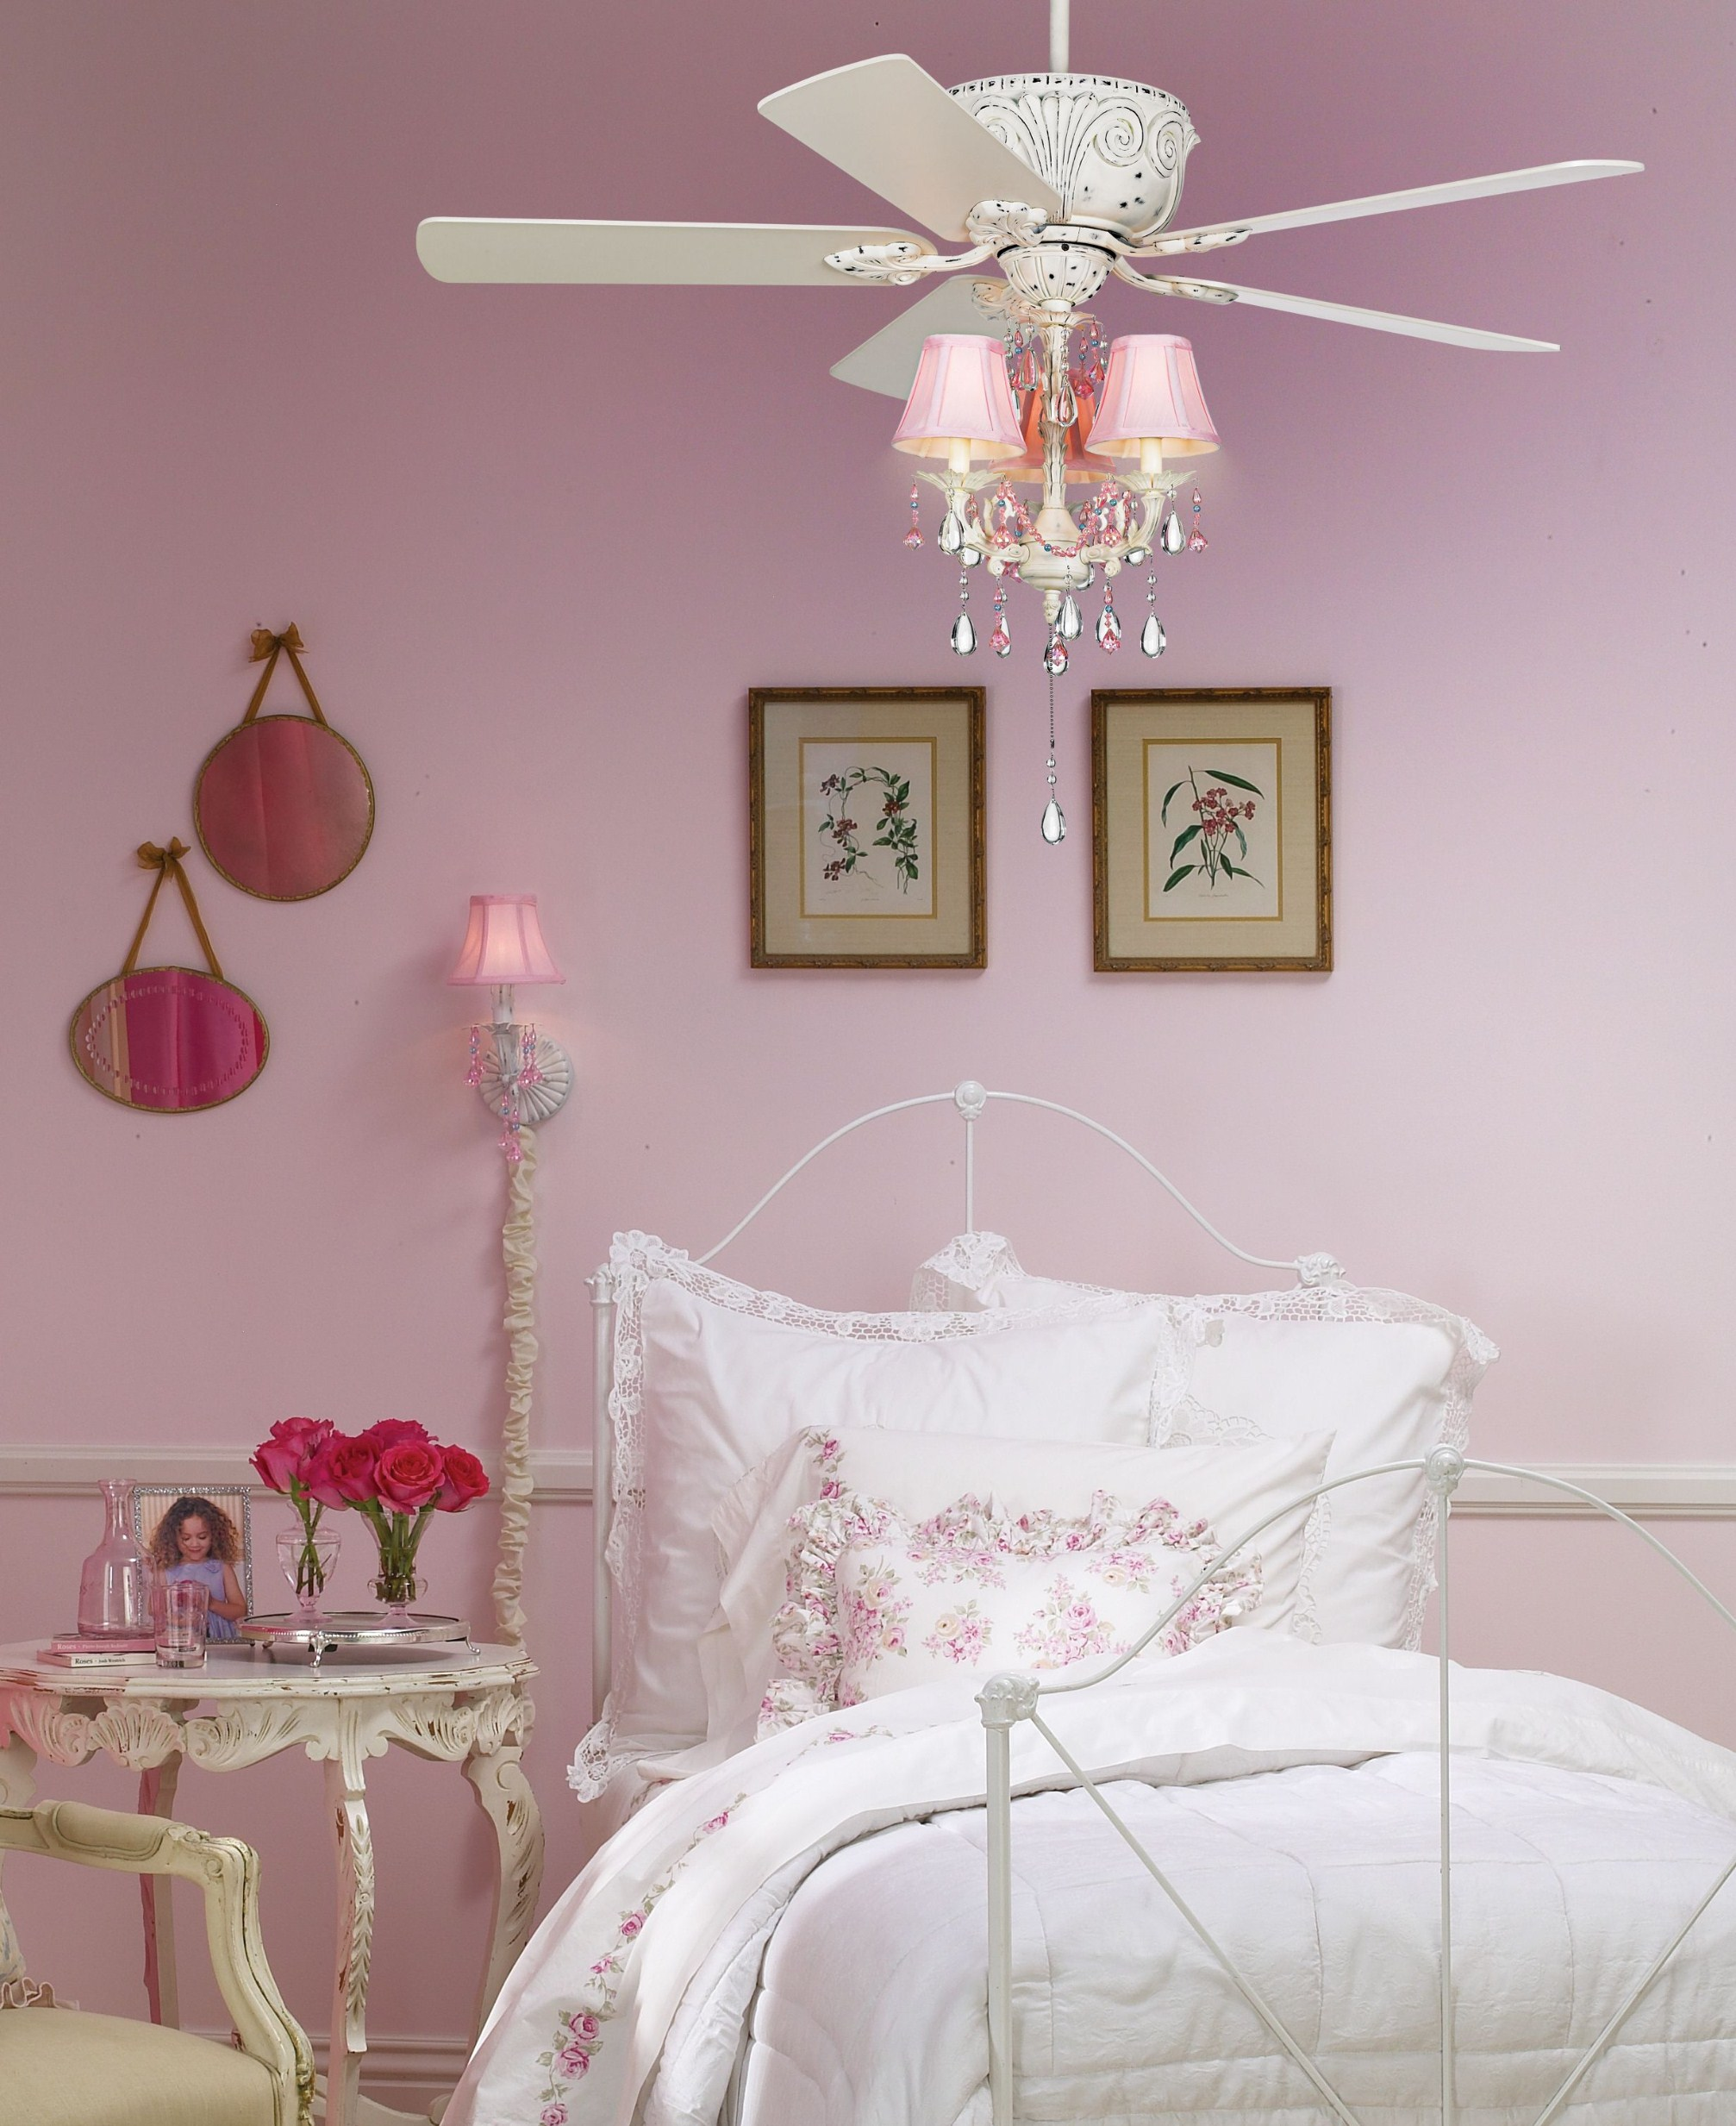 best quiet fan the super nice corner mounted ceiling fans tures kid bedroom chandelier excellent accent table interior and childrens chandeliers ing for comfort sweet home decor